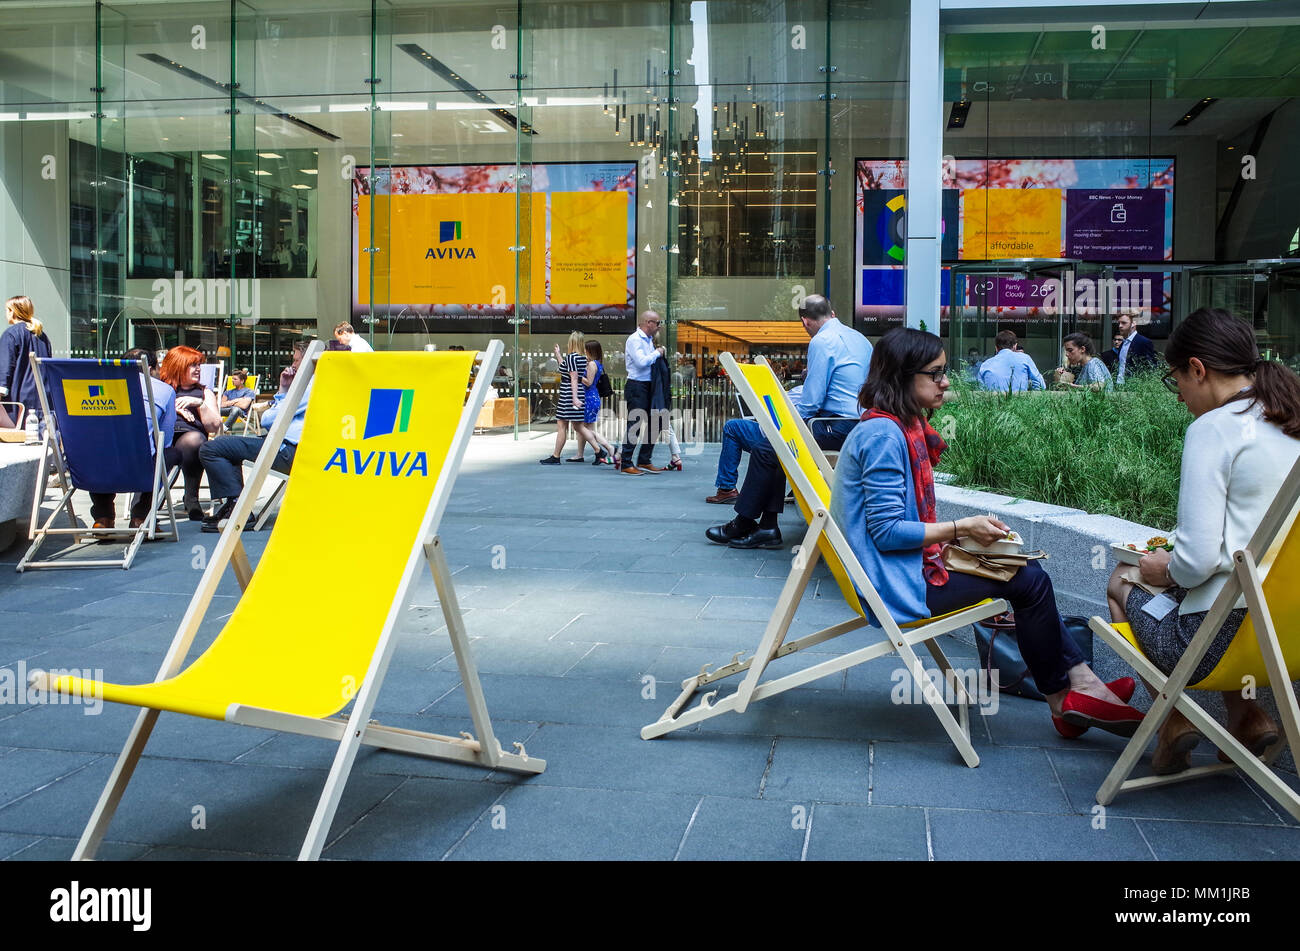 aviva-london-aviva-sponsored-deck-chairs